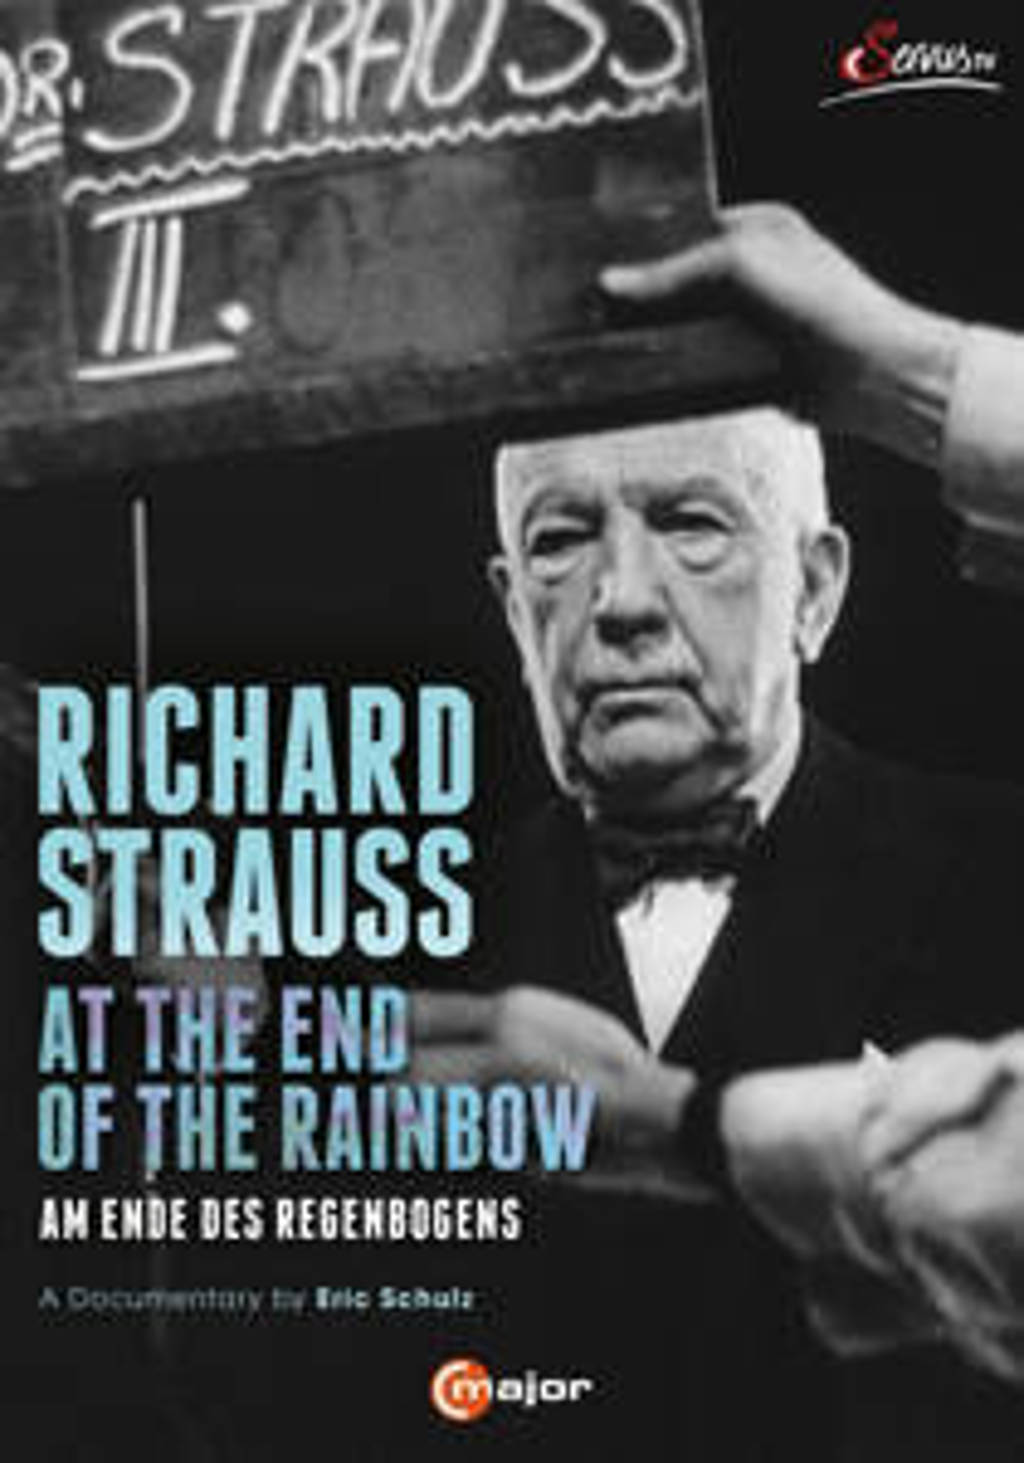 Mickisch Christian Strauss - At The End Of The Rainbow Richard (DVD)